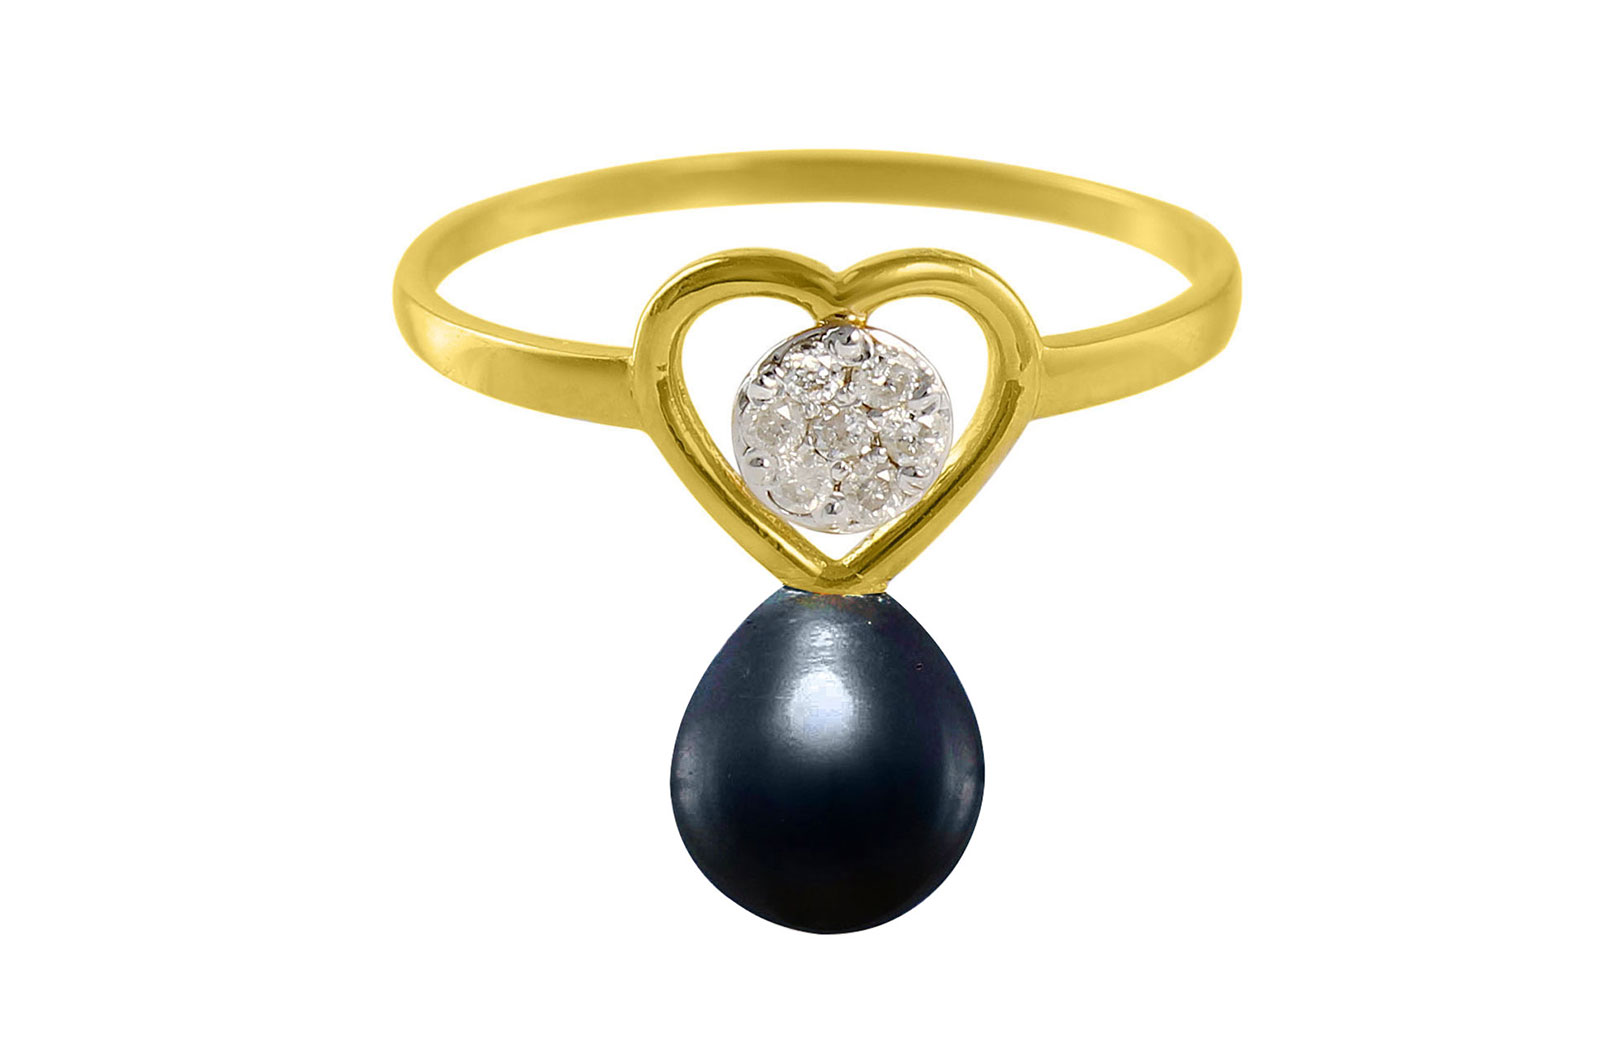 VP Jewels 18K Solid Gold 0.07ct Genuine Diamond and 7mm Black Pearl Heart Ring - Size US 7